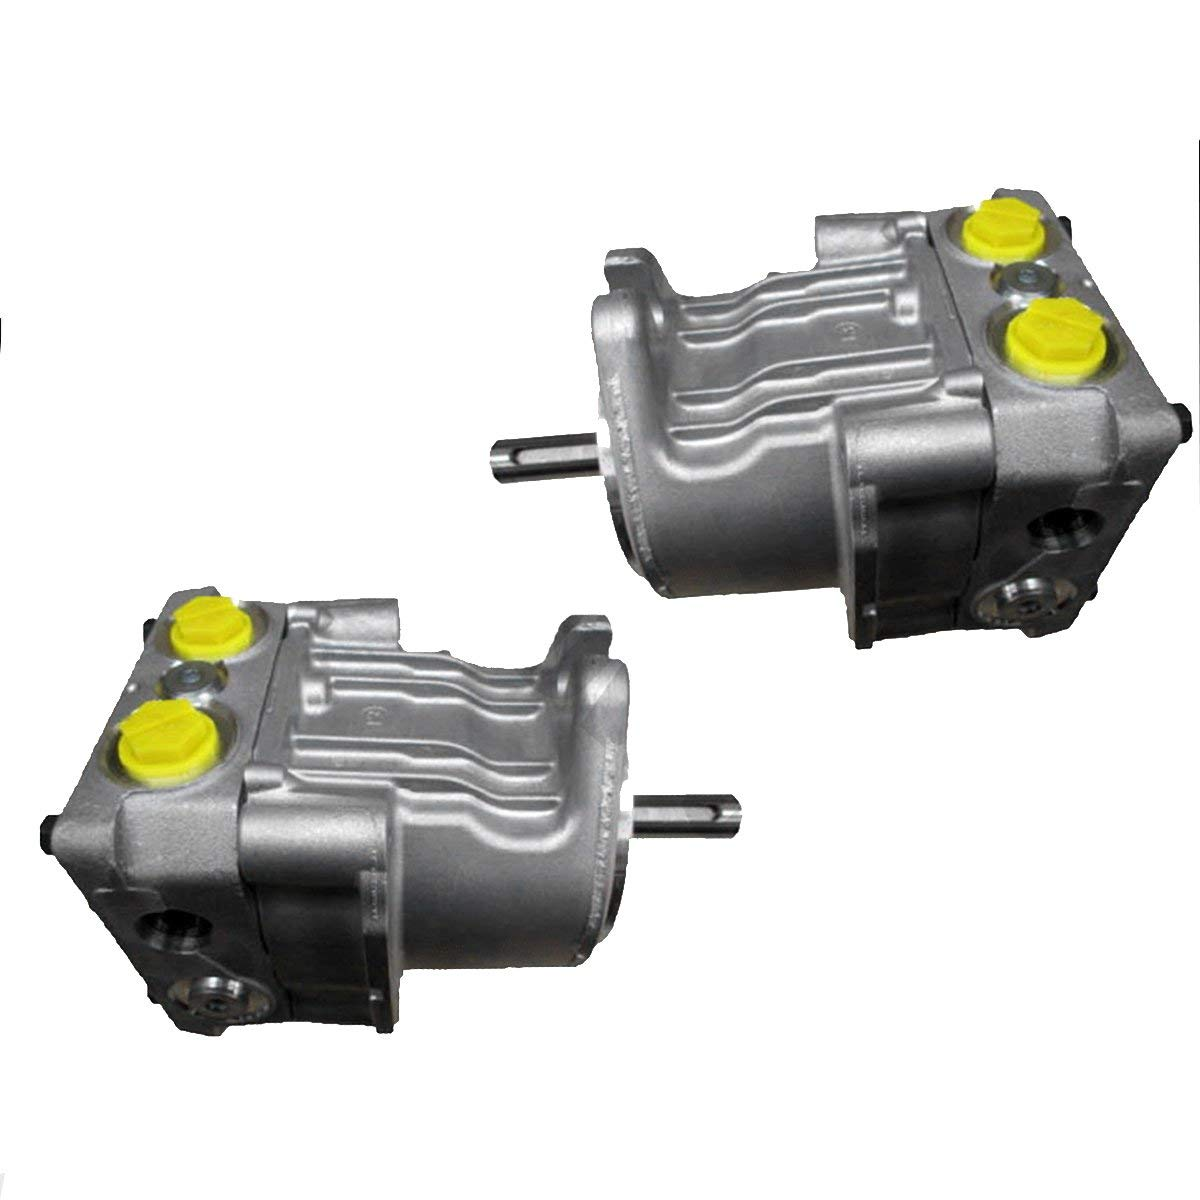 Hydro Gear Pump 10cc (Right & Left) Kit for Encore Prowler Lawn Mower & Others / PG-1KCC-DY1X-XXXX, PG-1HCC-DY1X-XXXX